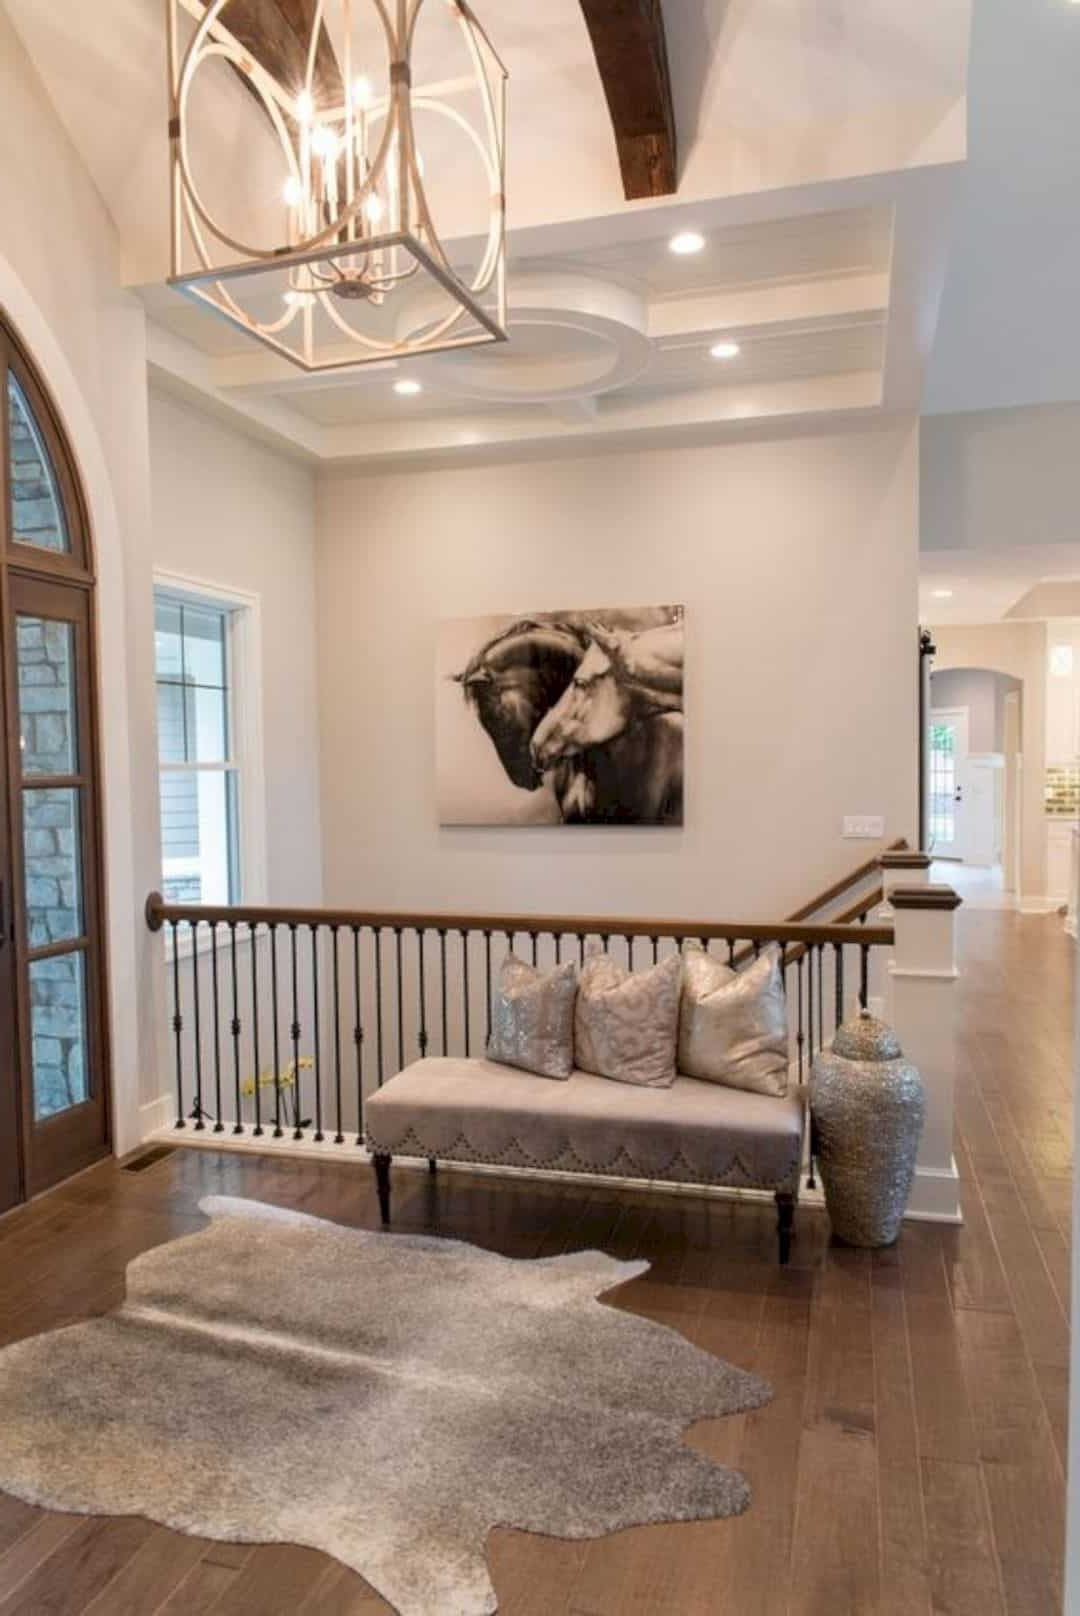 15 Top Raised Ranch Interior Design Ideas To Steal 10+ Raised Ranch Living Room Ideas